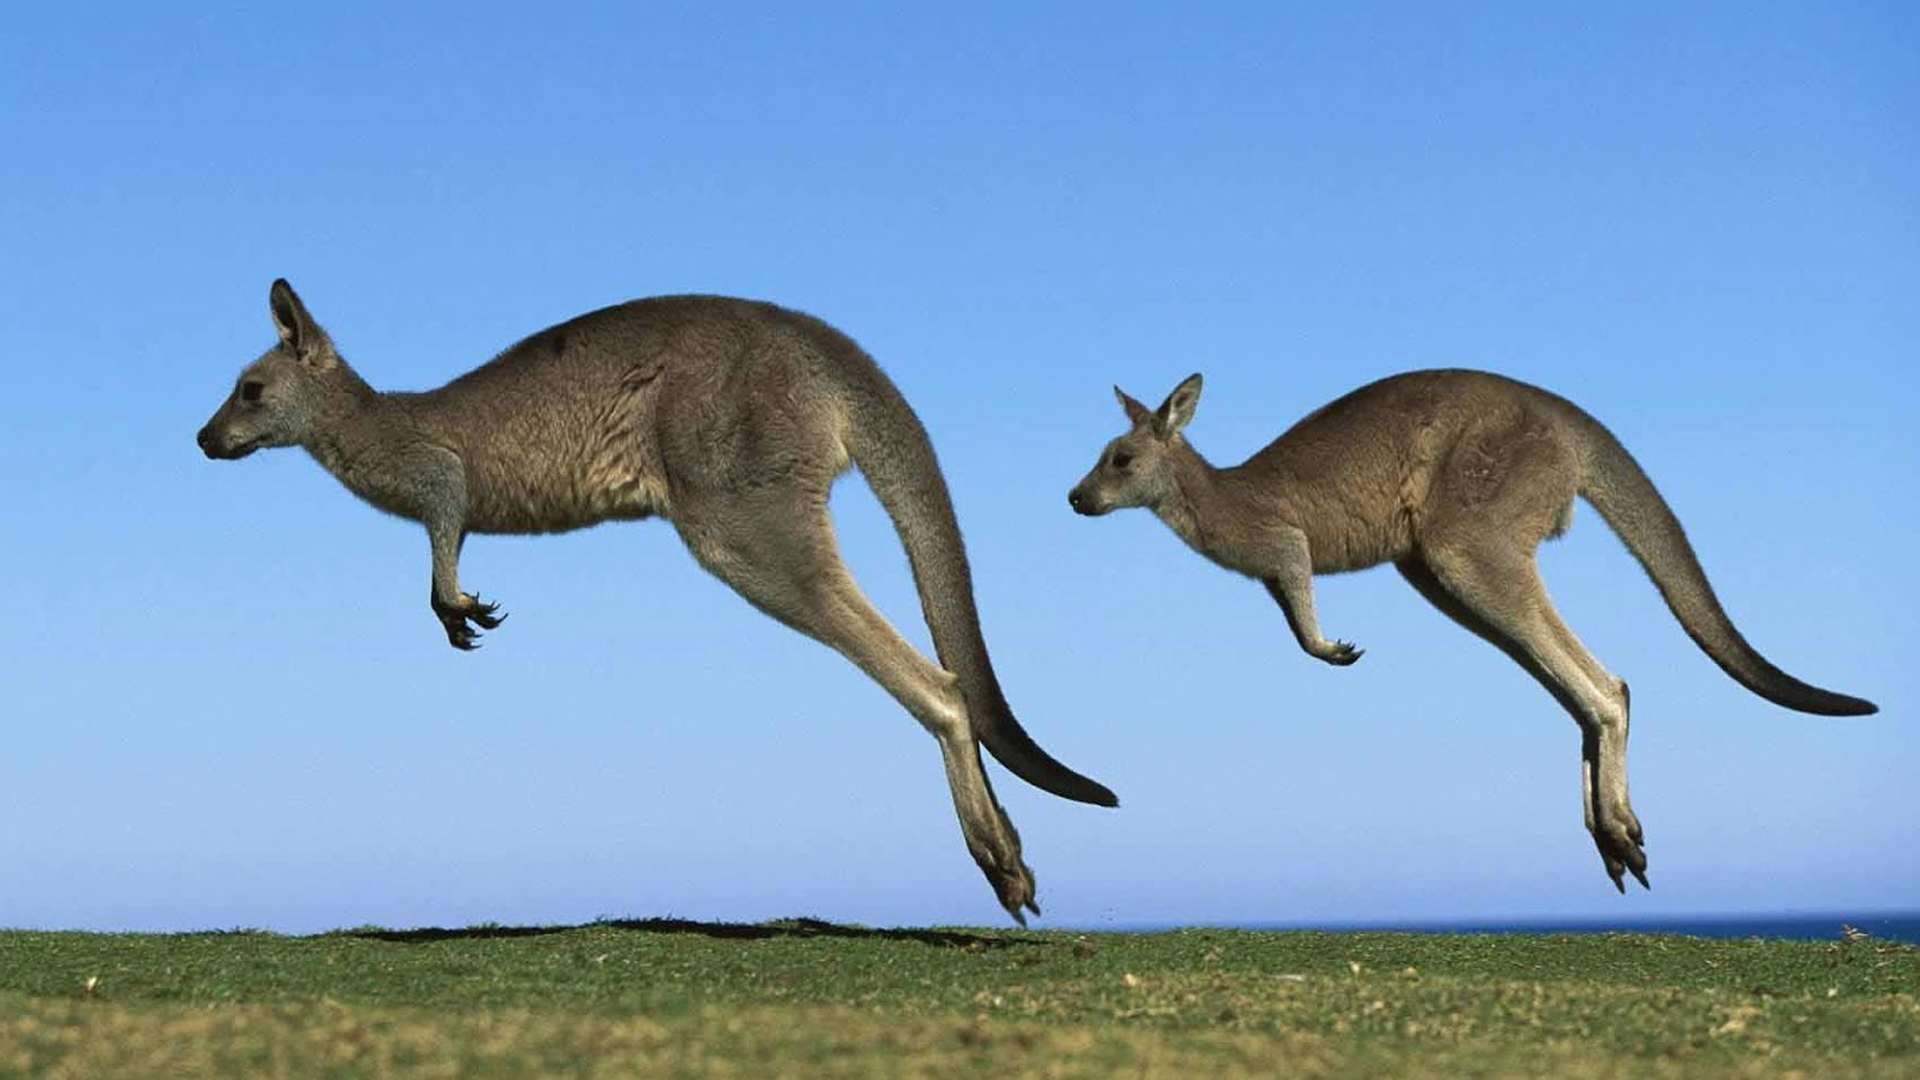 High Resolution Wallpaper | Kangaroo 1920x1080 px